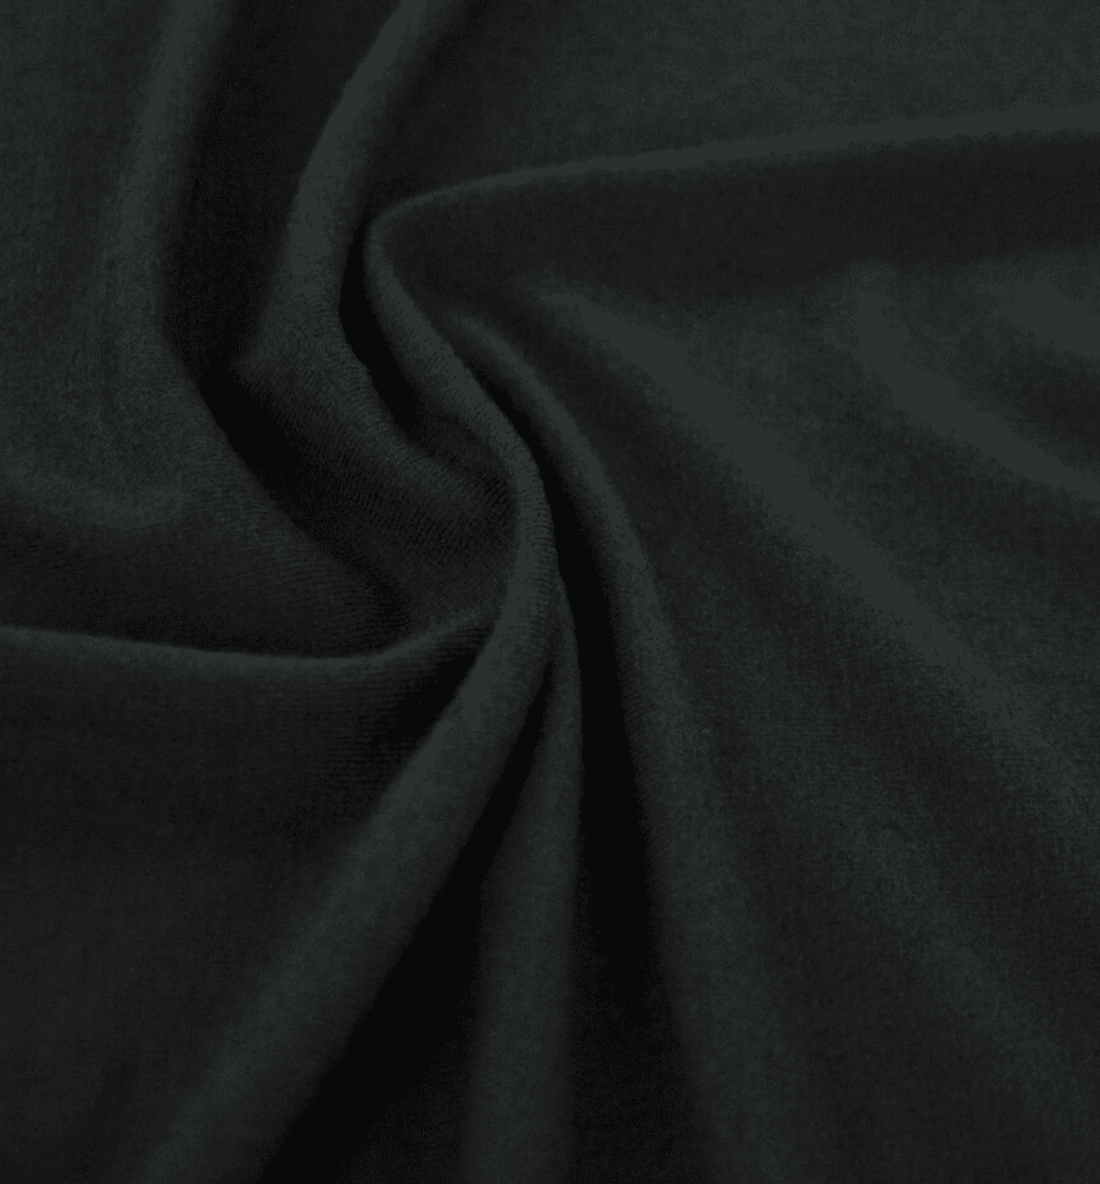 Detail of black rayon knit fabric